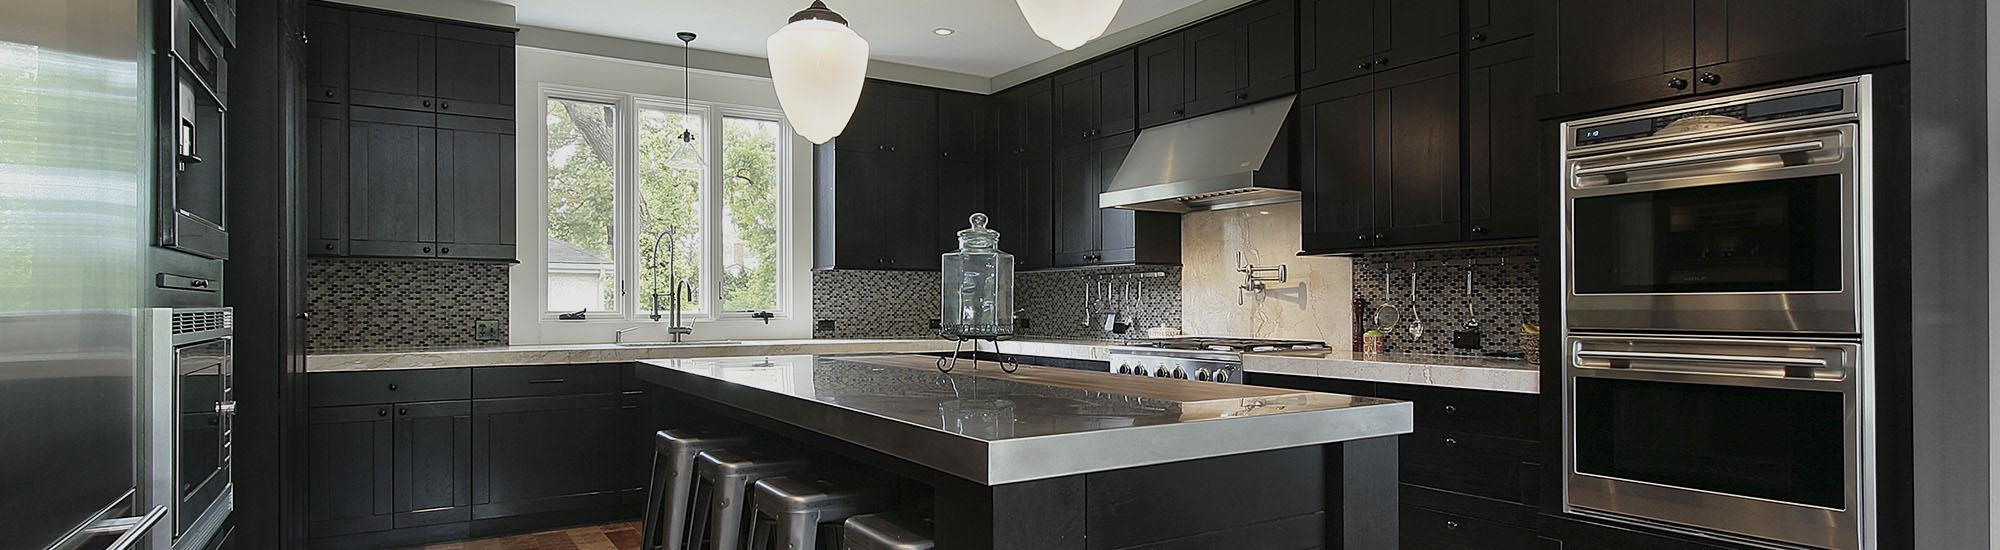 Kitchen Design Kitchen Designers Toronto Woodpecker Kitchen Designs Inc